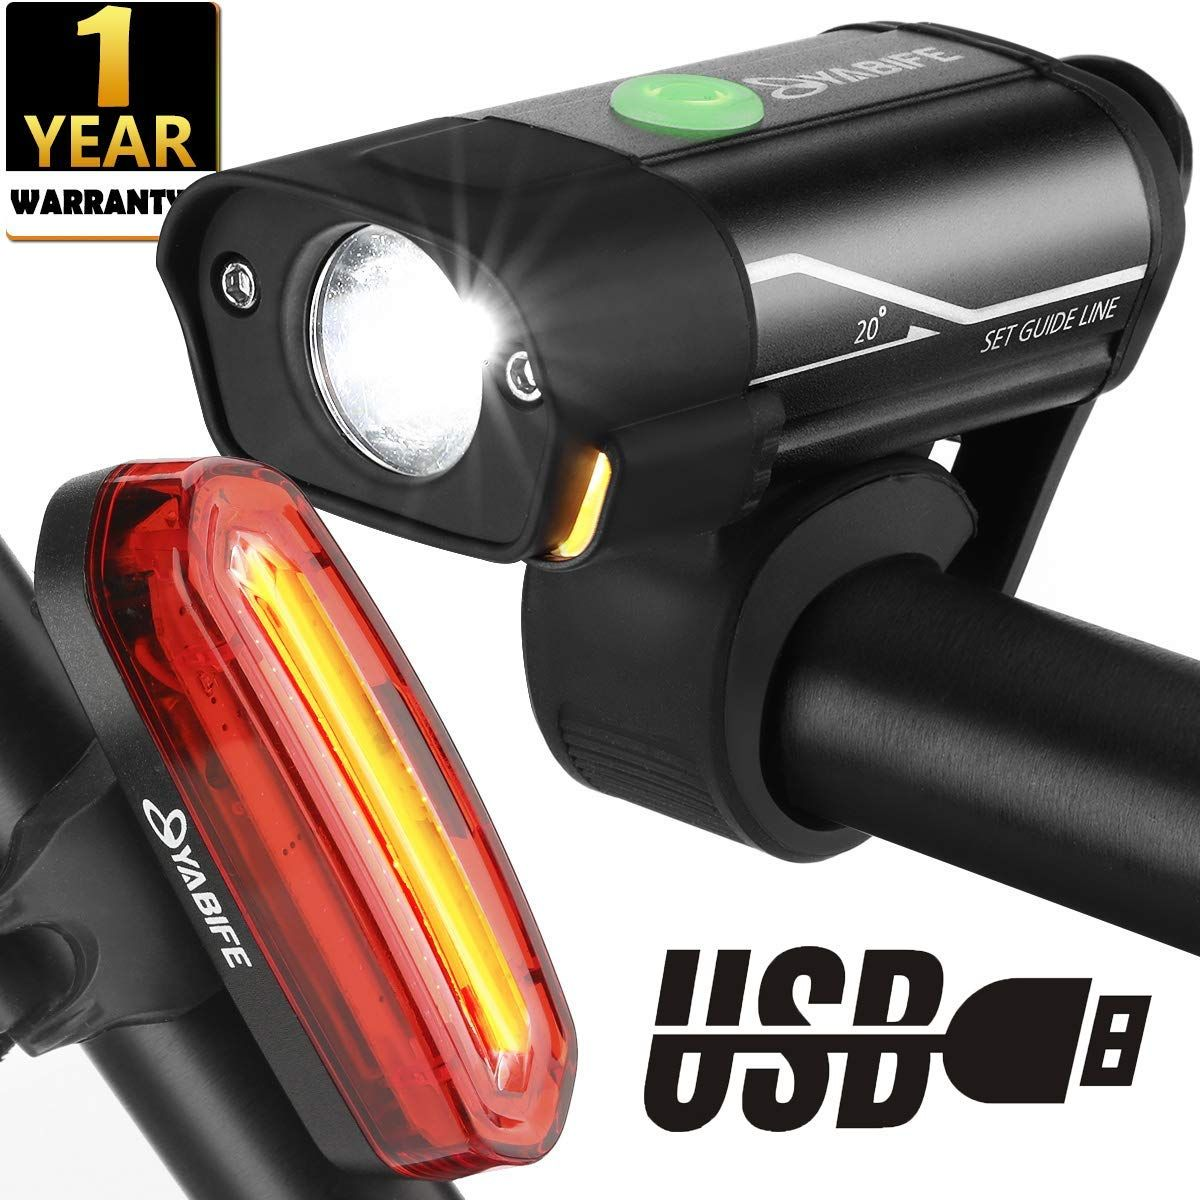 Waterproof Bike Light Bicycle Lamp Headlight Clip-on Taillight Accessories